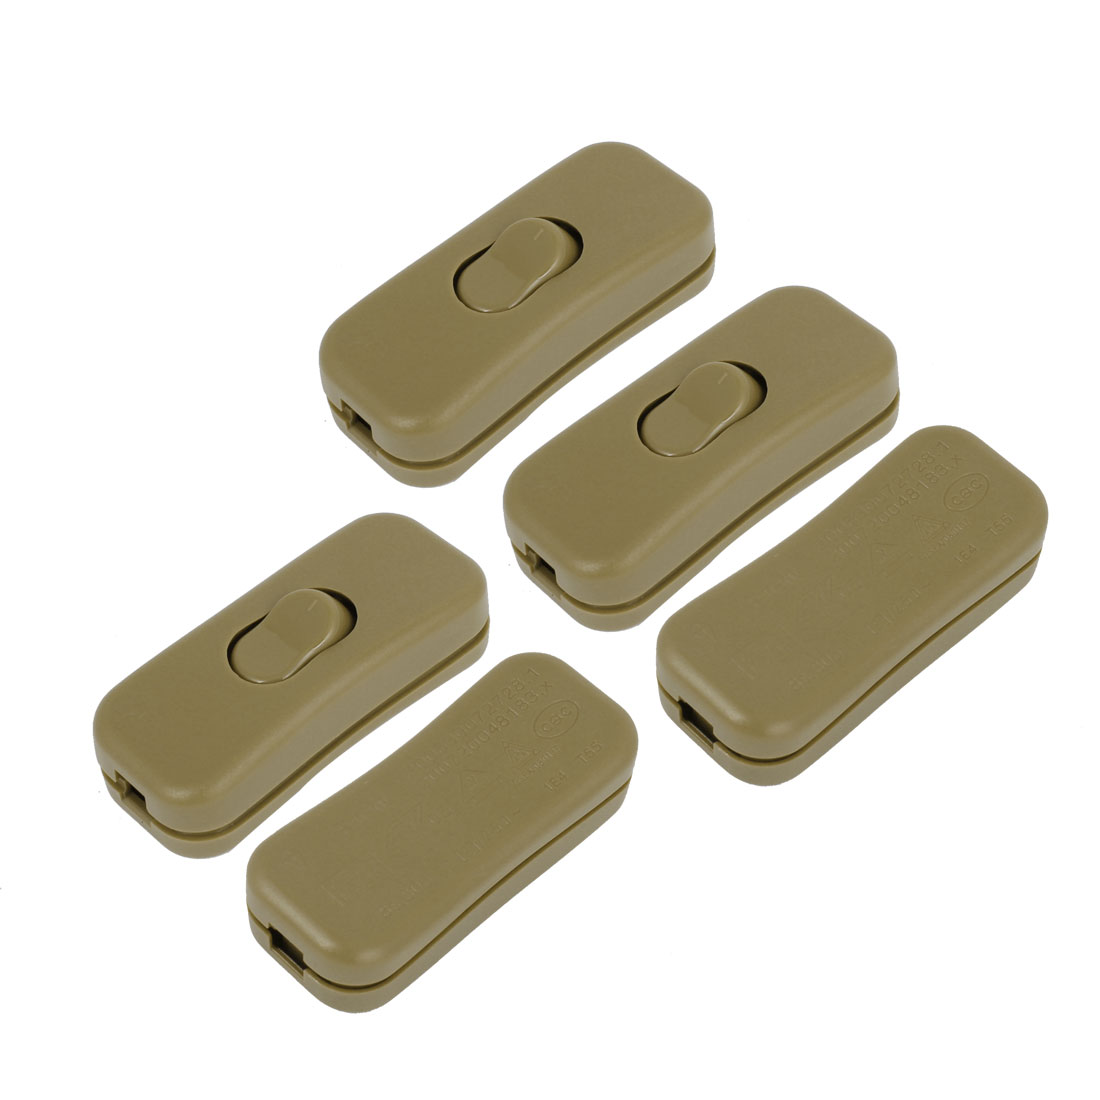 5pcs 1A AC250V Bedroom Table Lamp Controller Inline Cord Rocker Switch Army Green